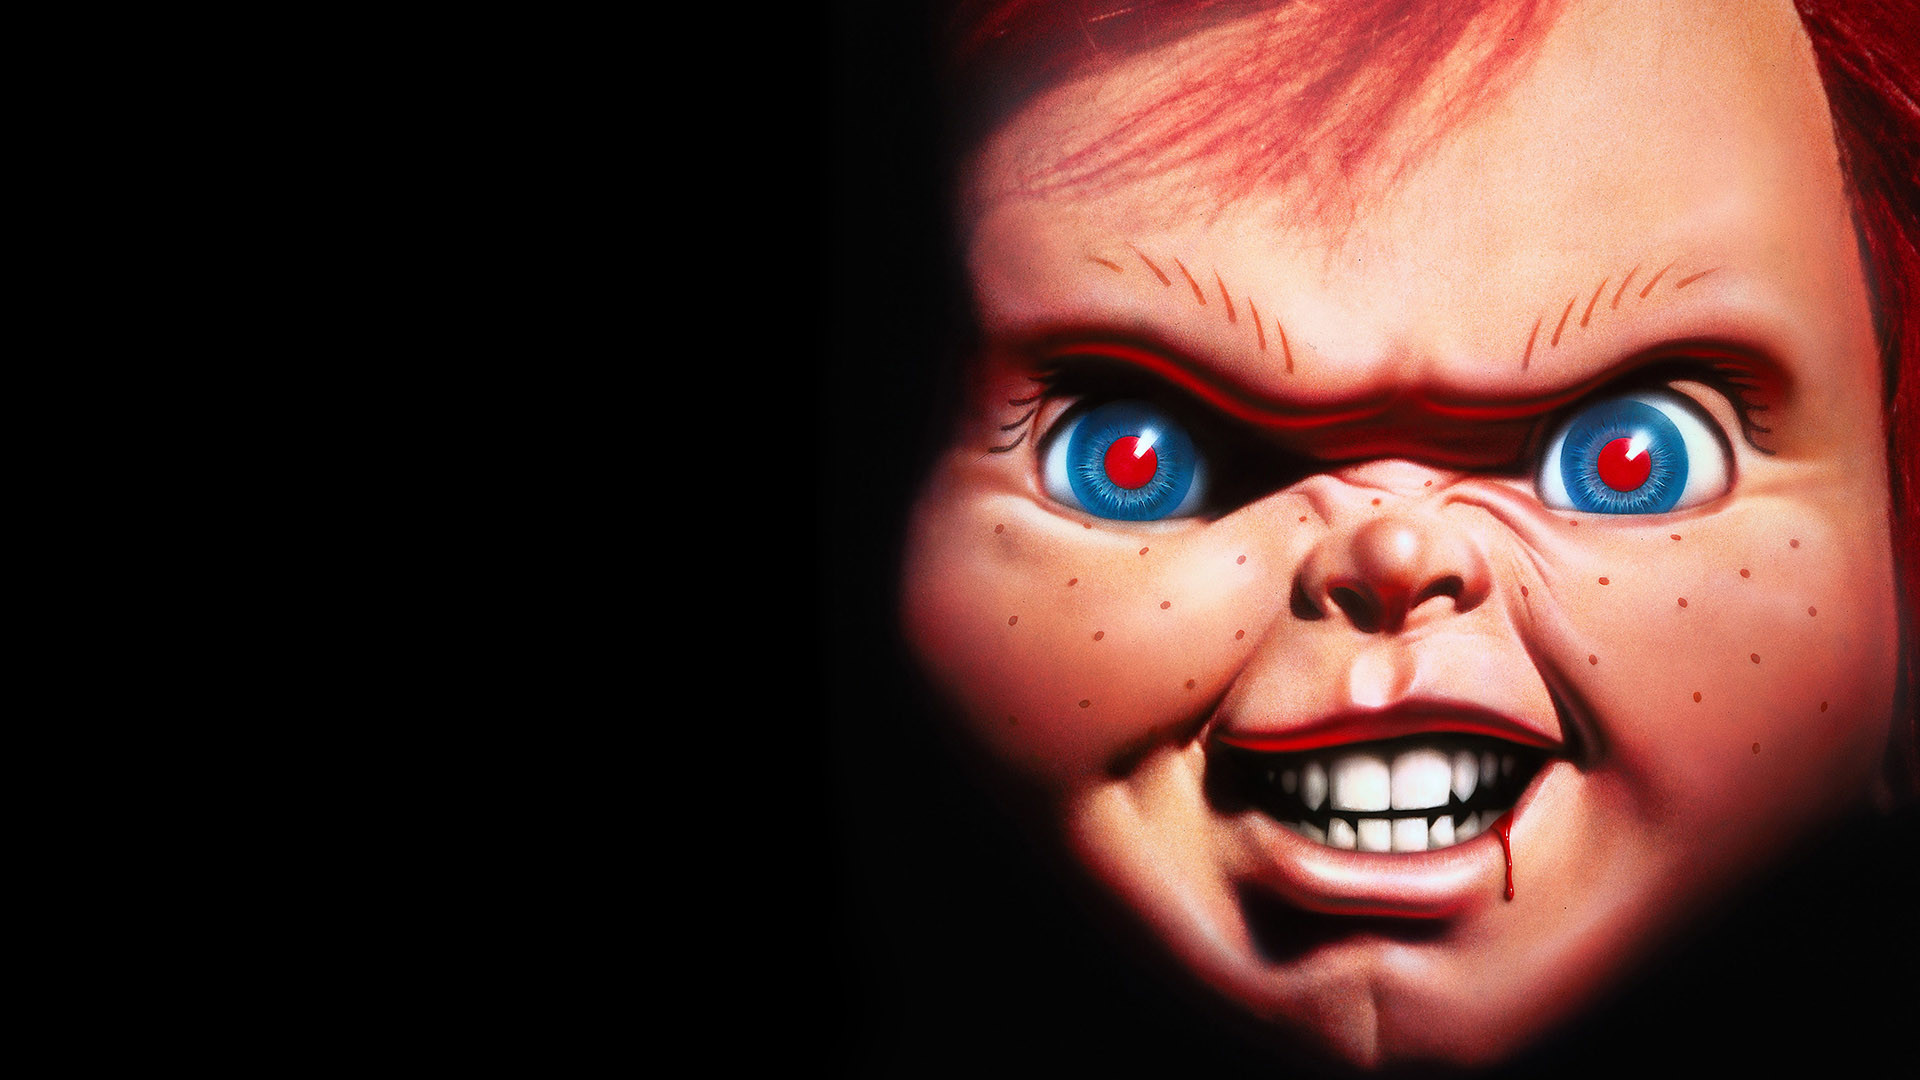 1920x1080 Childs Play 3 Computer Wallpapers, Desktop Backgrounds